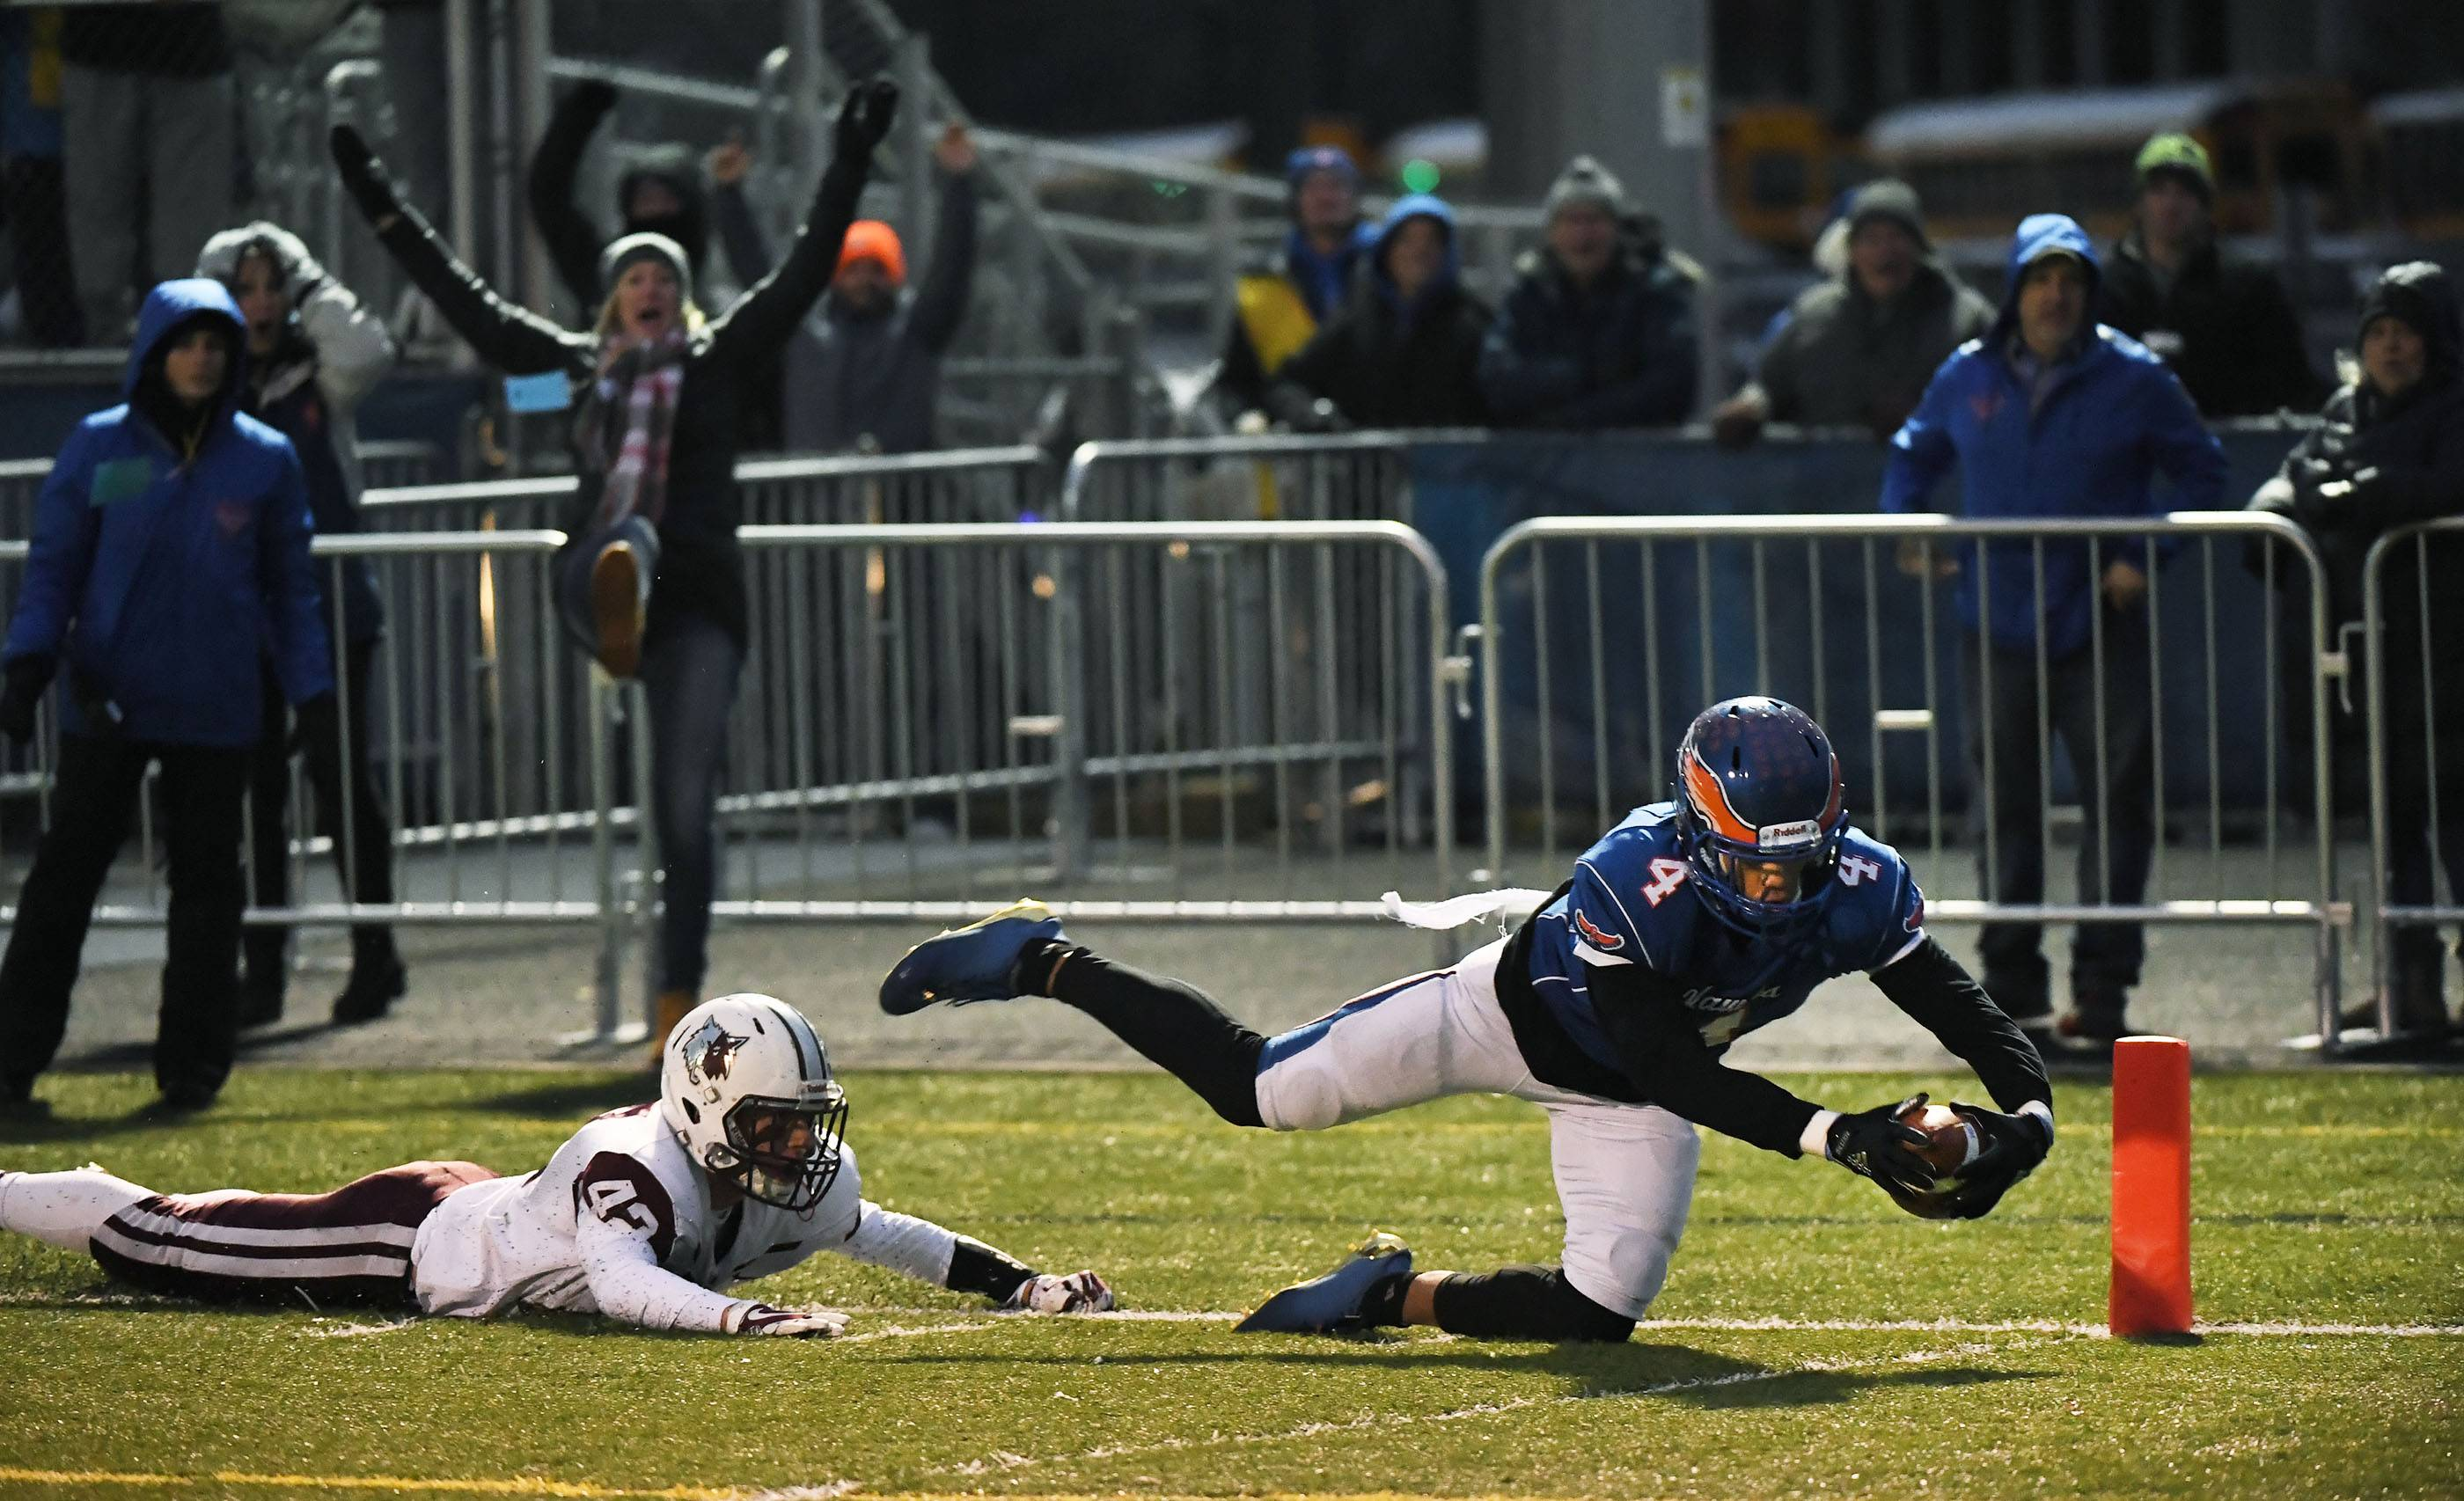 Hoffman Estates' Jayvon Blissett gets the ball over the goal line as his knee touches the turf while Prairie Ridge's Drew Fryer slides behind him in the first half of Saturday's Class 6A state semifinals at Hoffman Estates.